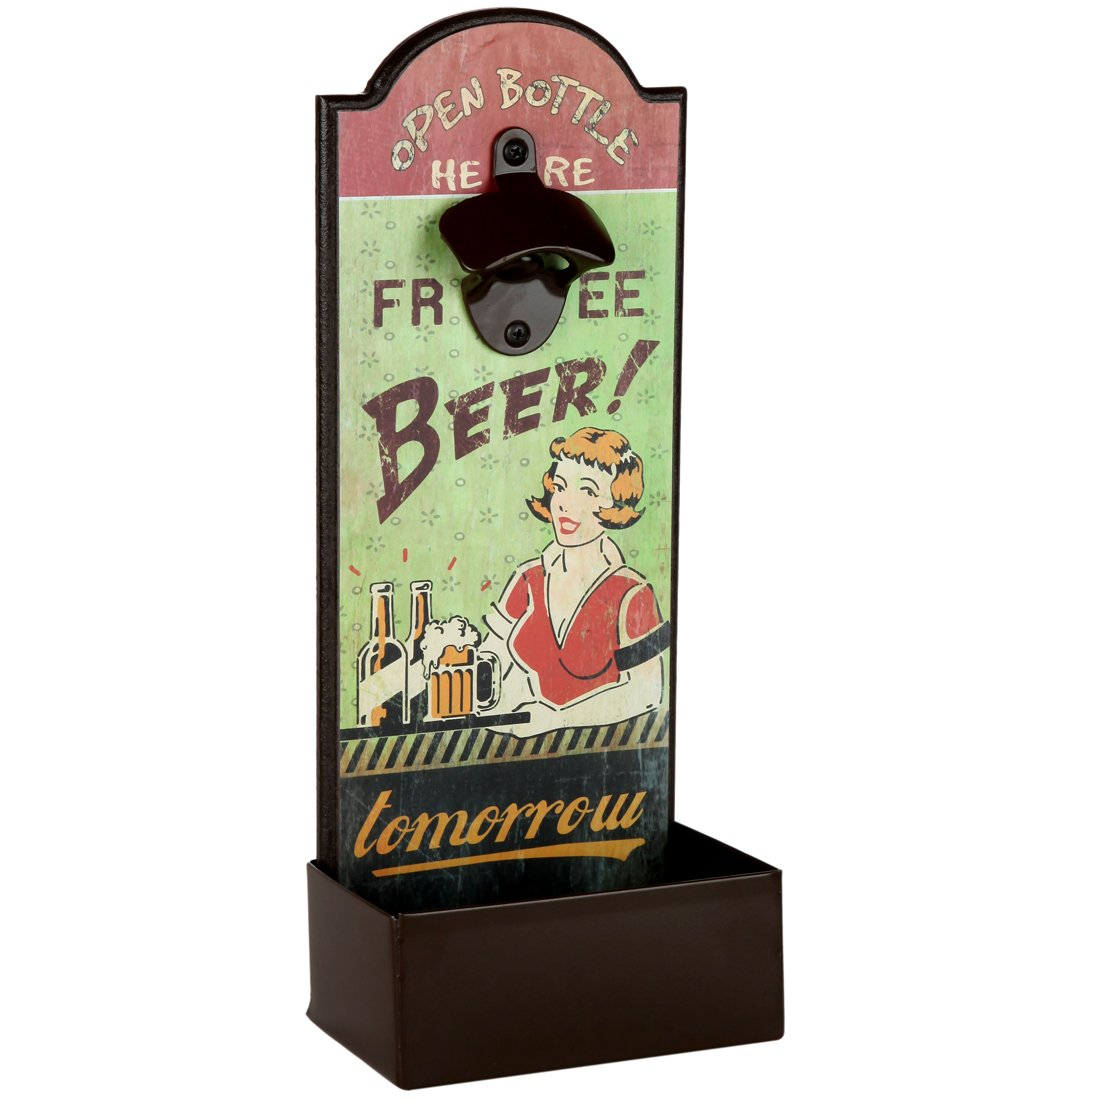 Lily's Home Vintage Humorous Beer Bottle Opener With Cap Catcher, Father's Day Gift 0